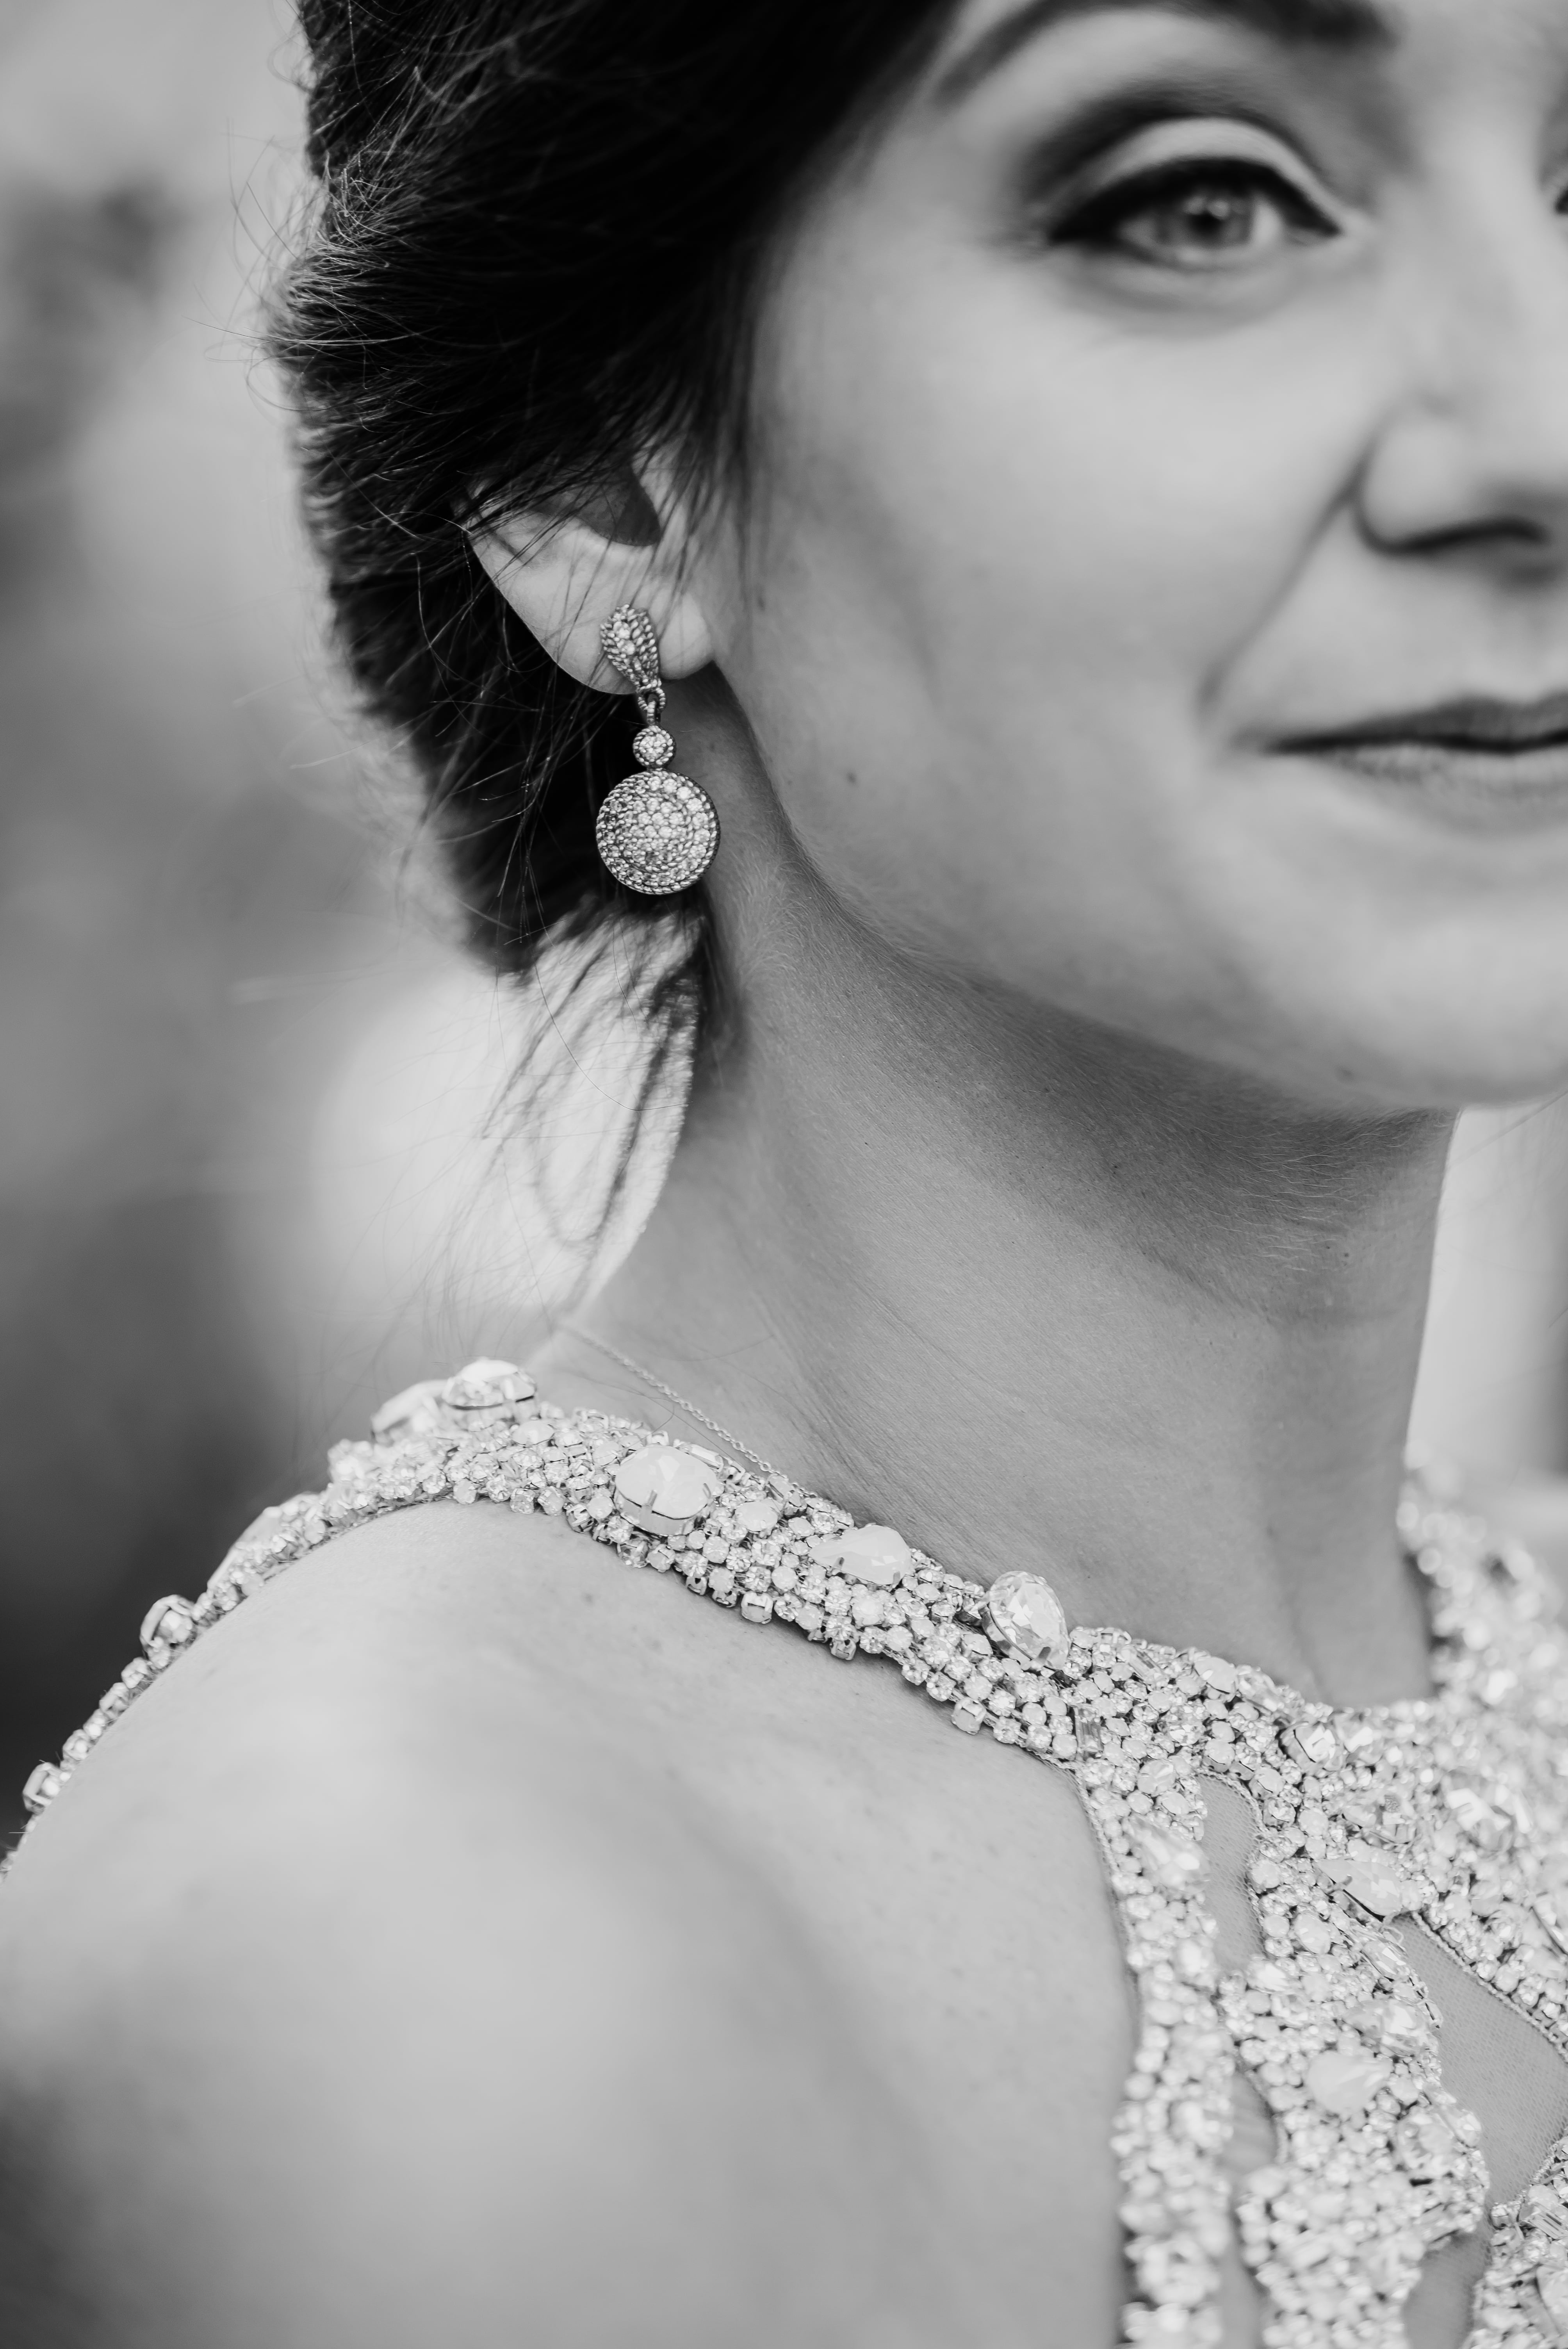 Detail shot of brides stunning hair and makeup done by Cali Stott Artistry as she stands in her Hayden Olivia gown captured by Shutter Owl Photography